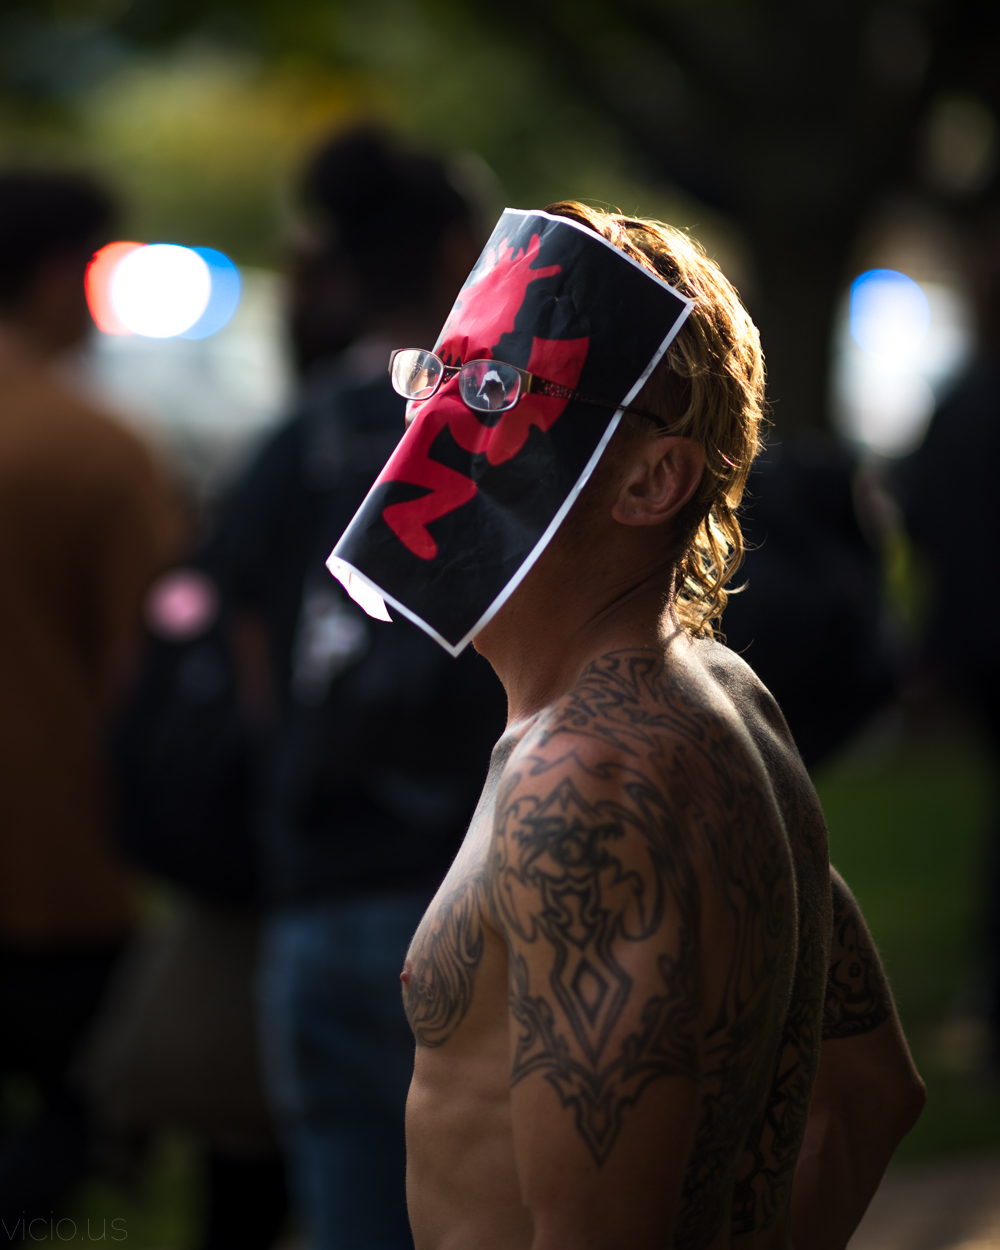 JuggaloMarch_EricCharlesPeterson_vicio.us_wm-15.jpg